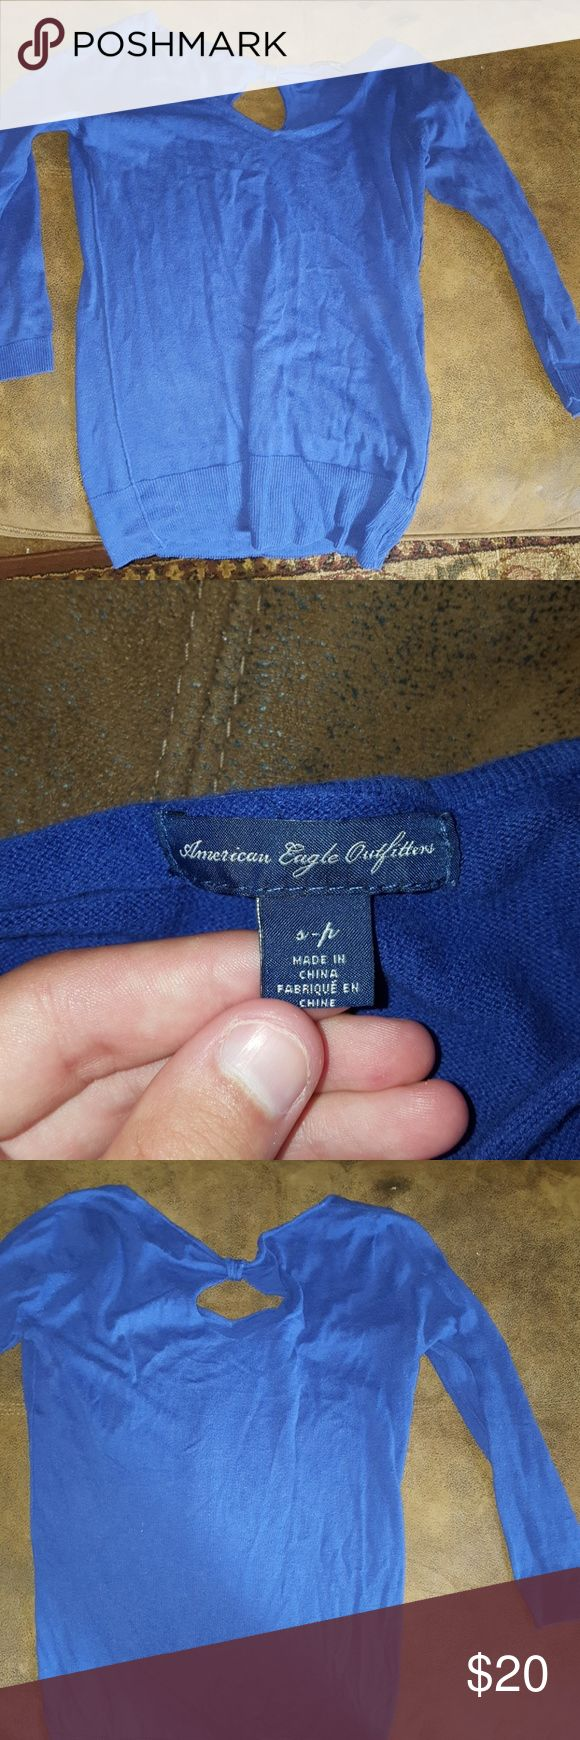 american eagle shirt never worn before still bran new American Eagle Outfitters Tops